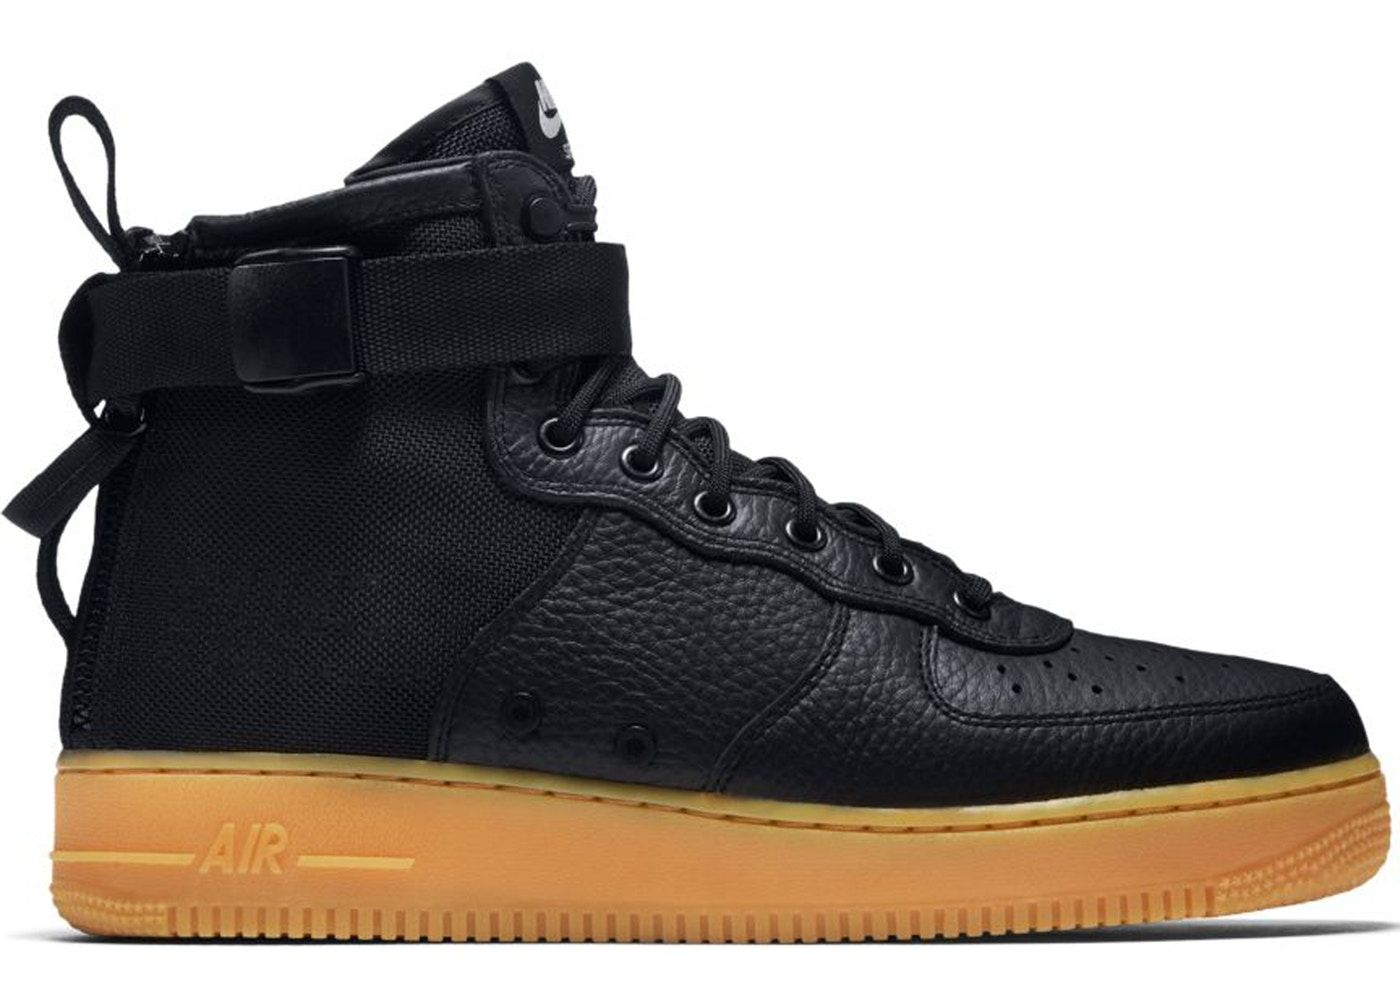 141bb7b5 Check out the Nike SF Air Force 1 Mid Black Gum available on StockX